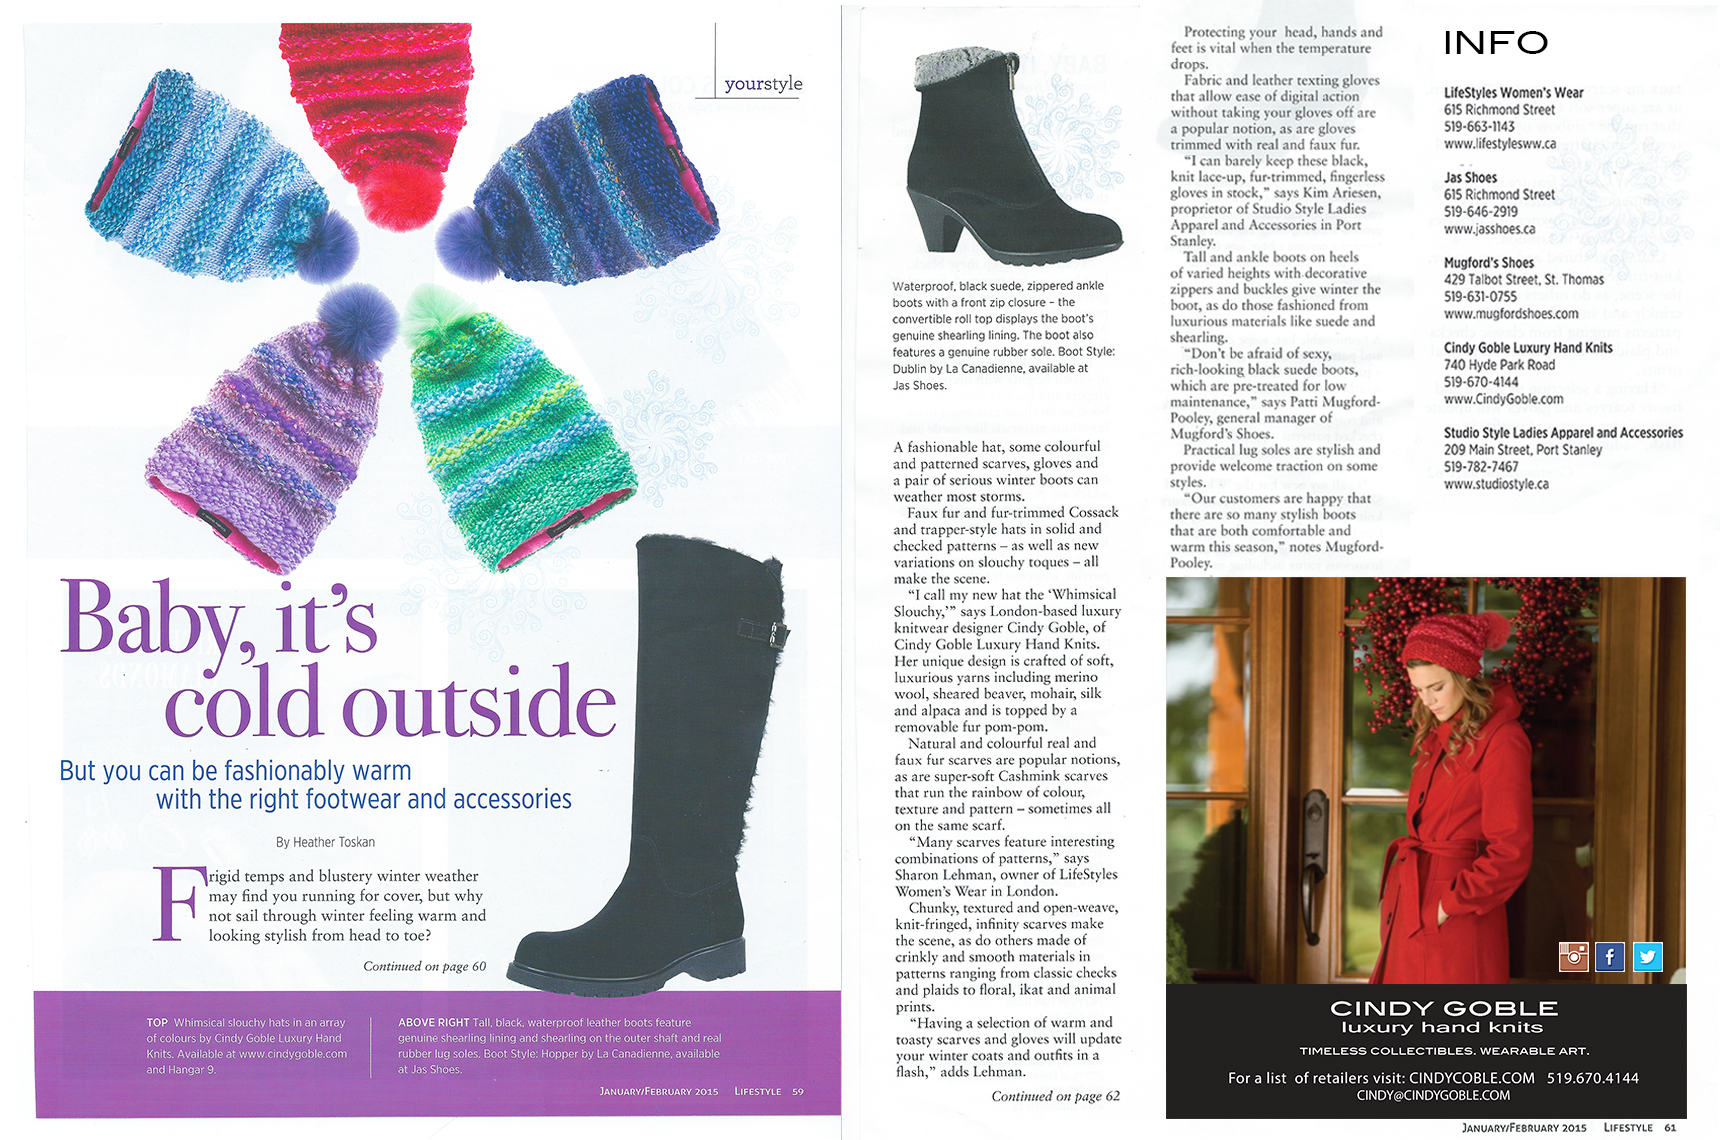 Featured article in LIFESTYLE MAGAZINE, January/February 2015 issue